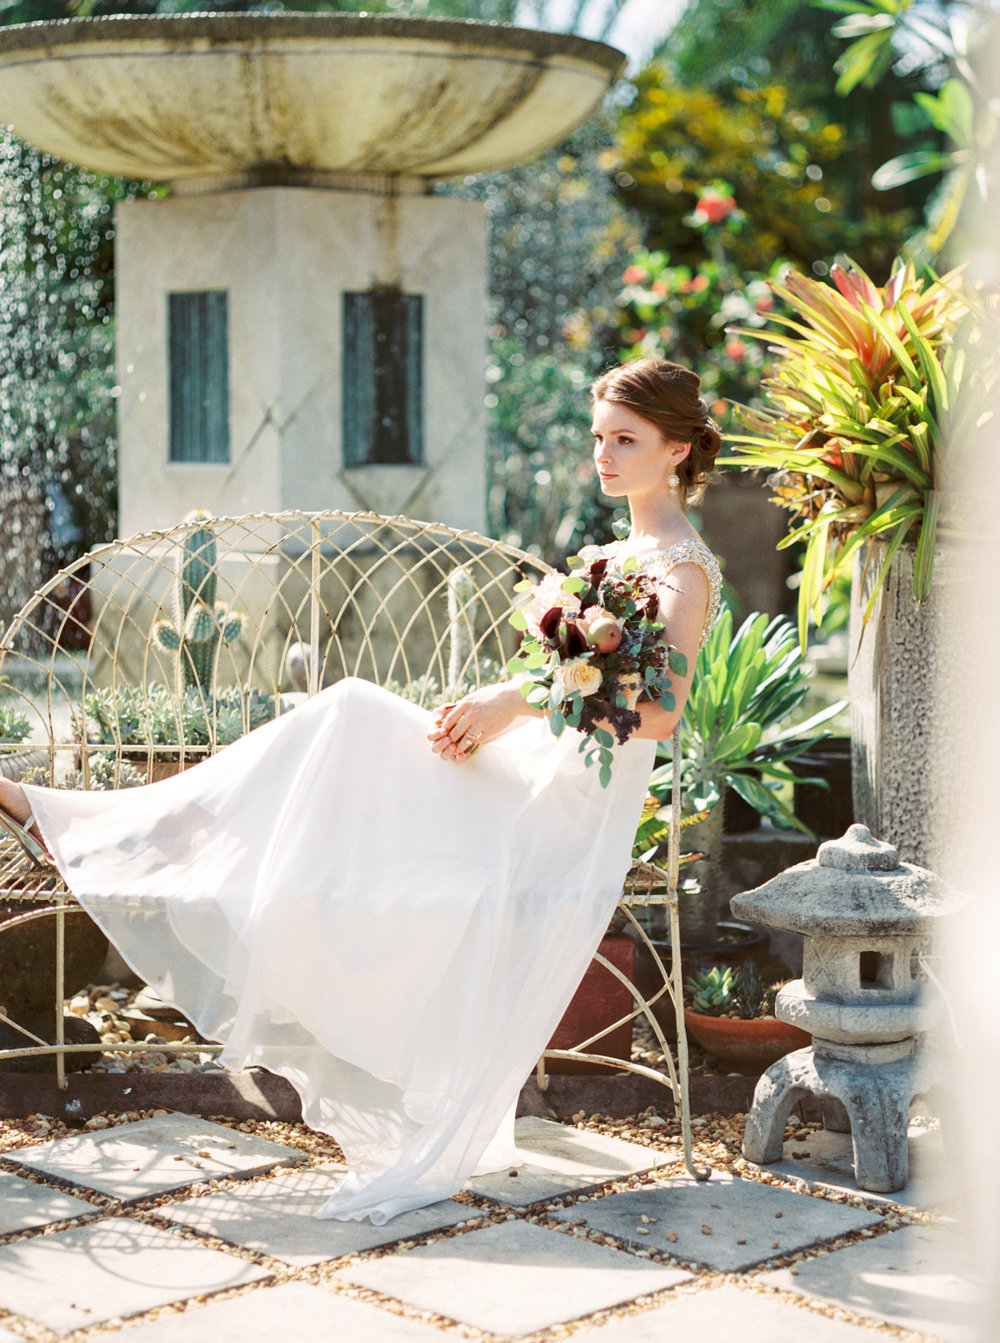 valkaria gardens palm bay FL bride in garden wedding photos